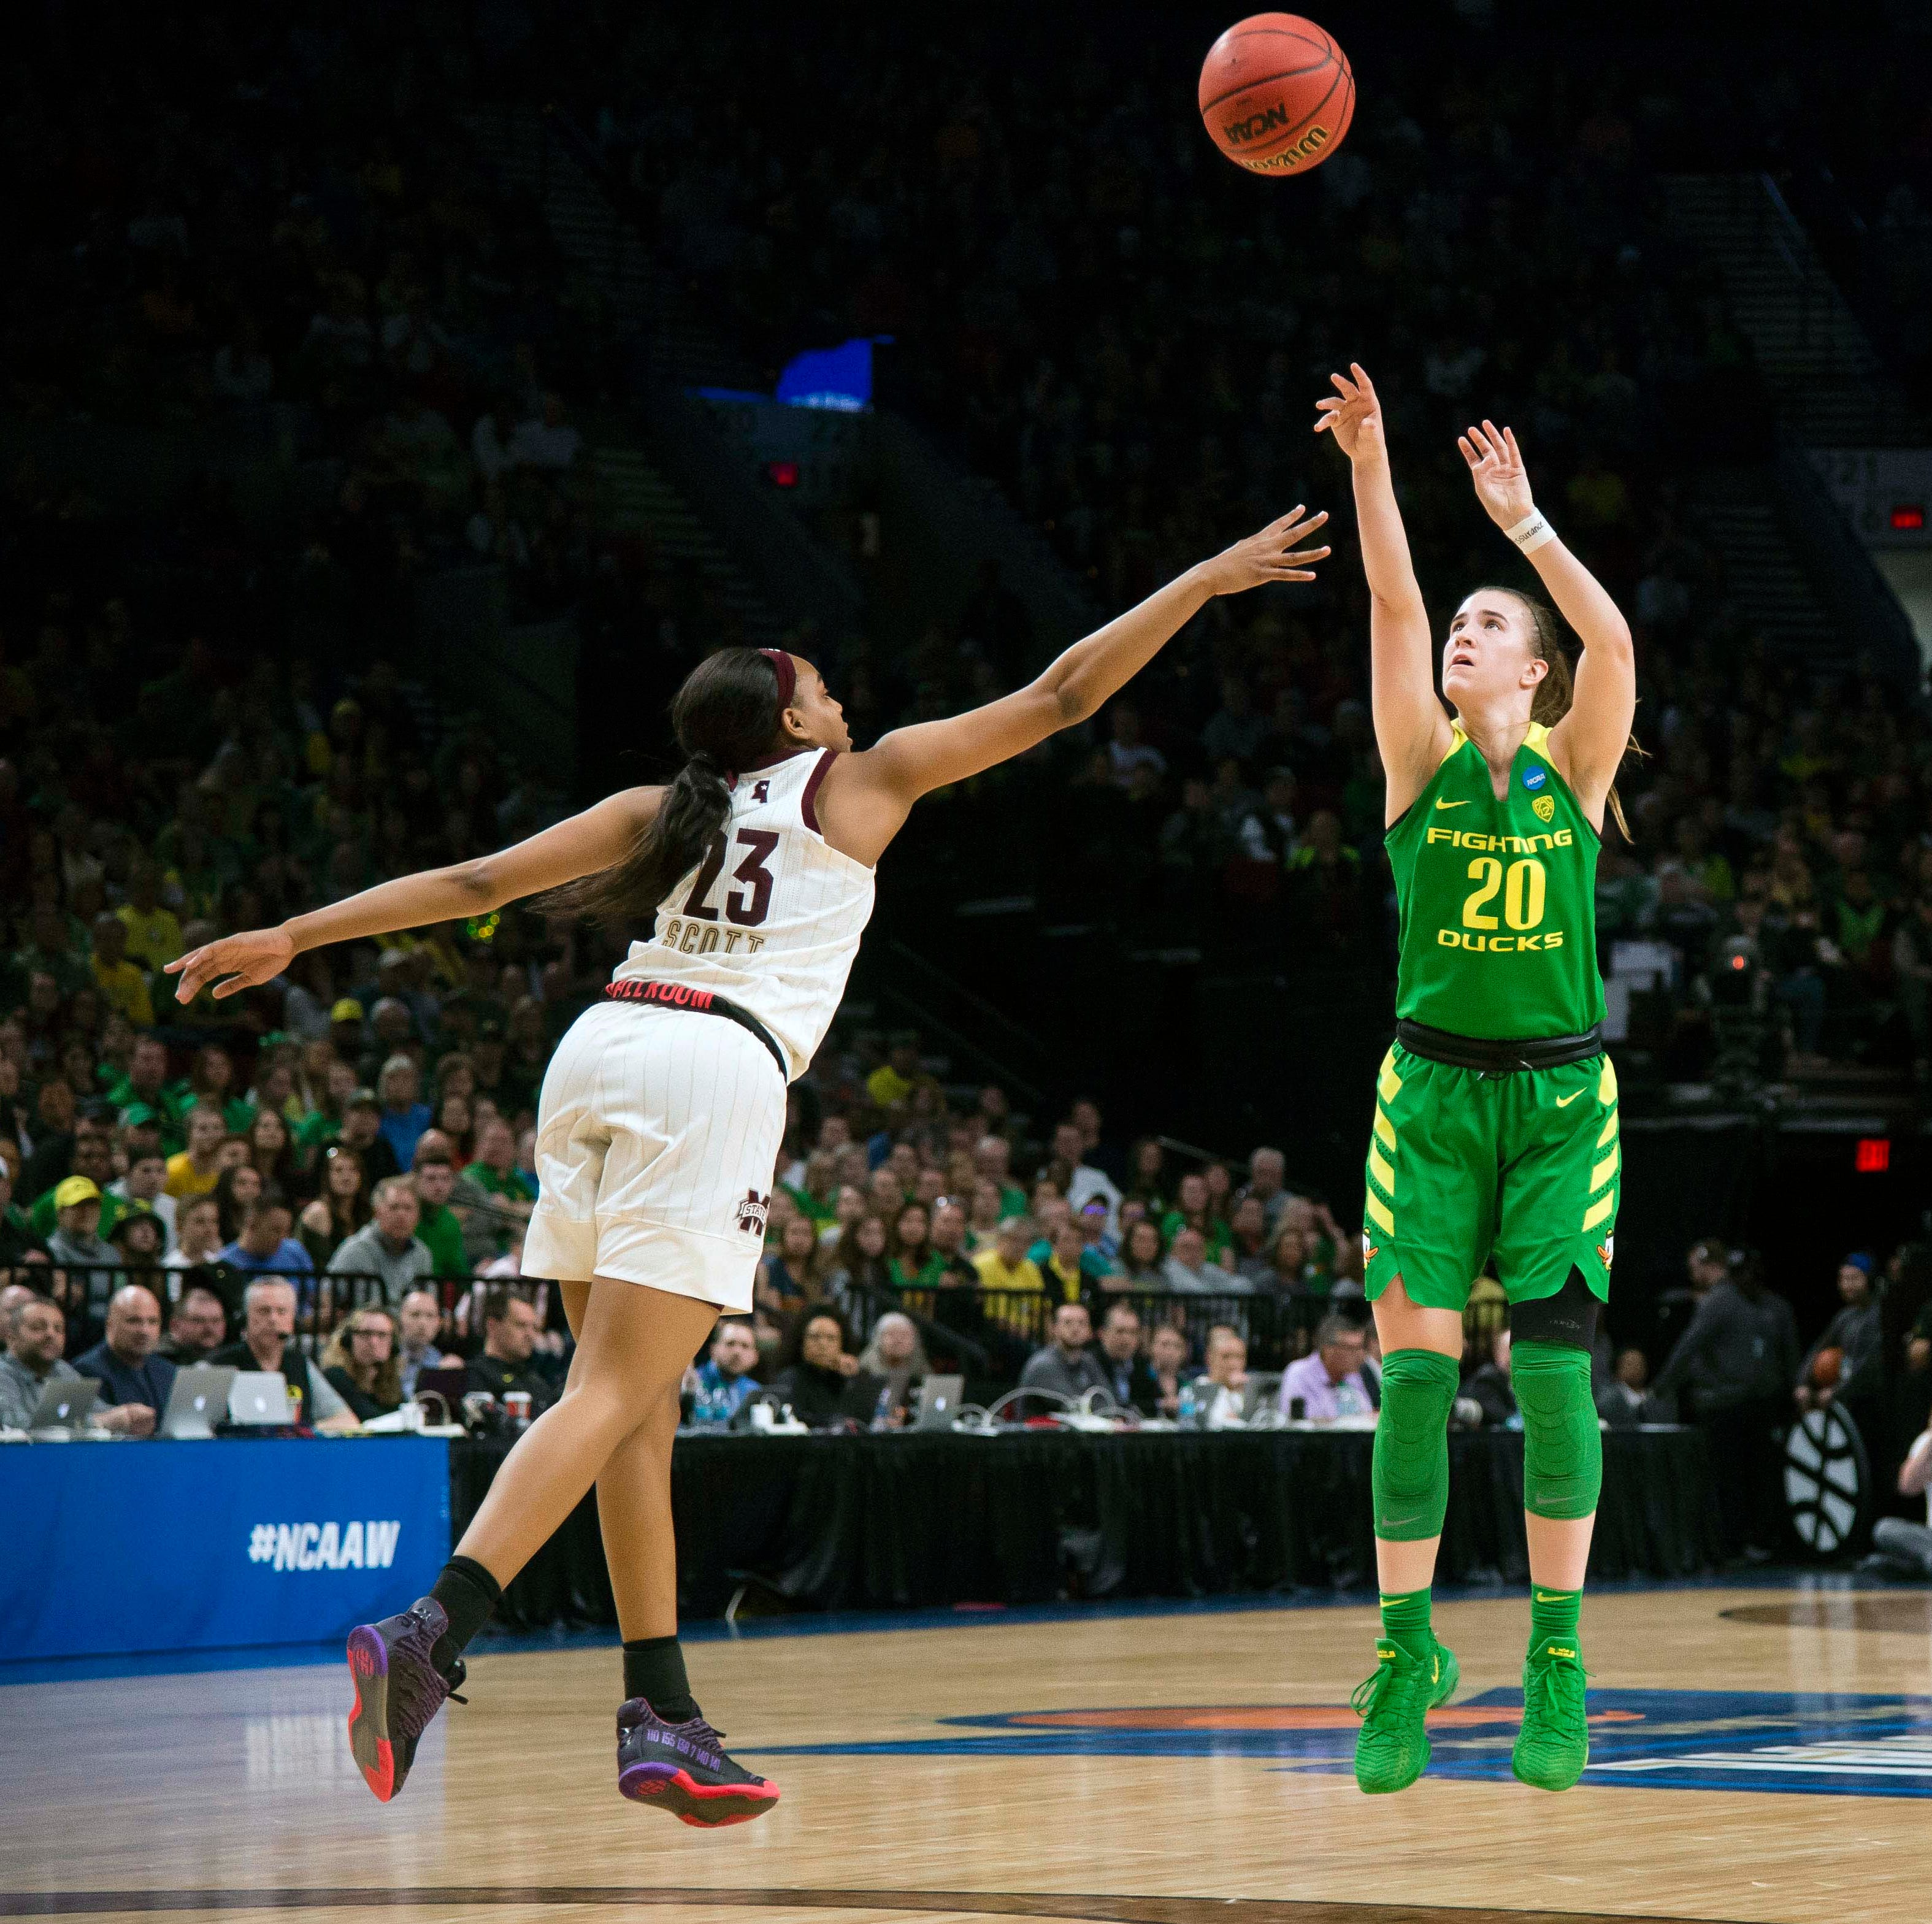 Mississippi State falls to Oregon in Elite Eight, ending Bulldogs' Final Four streak